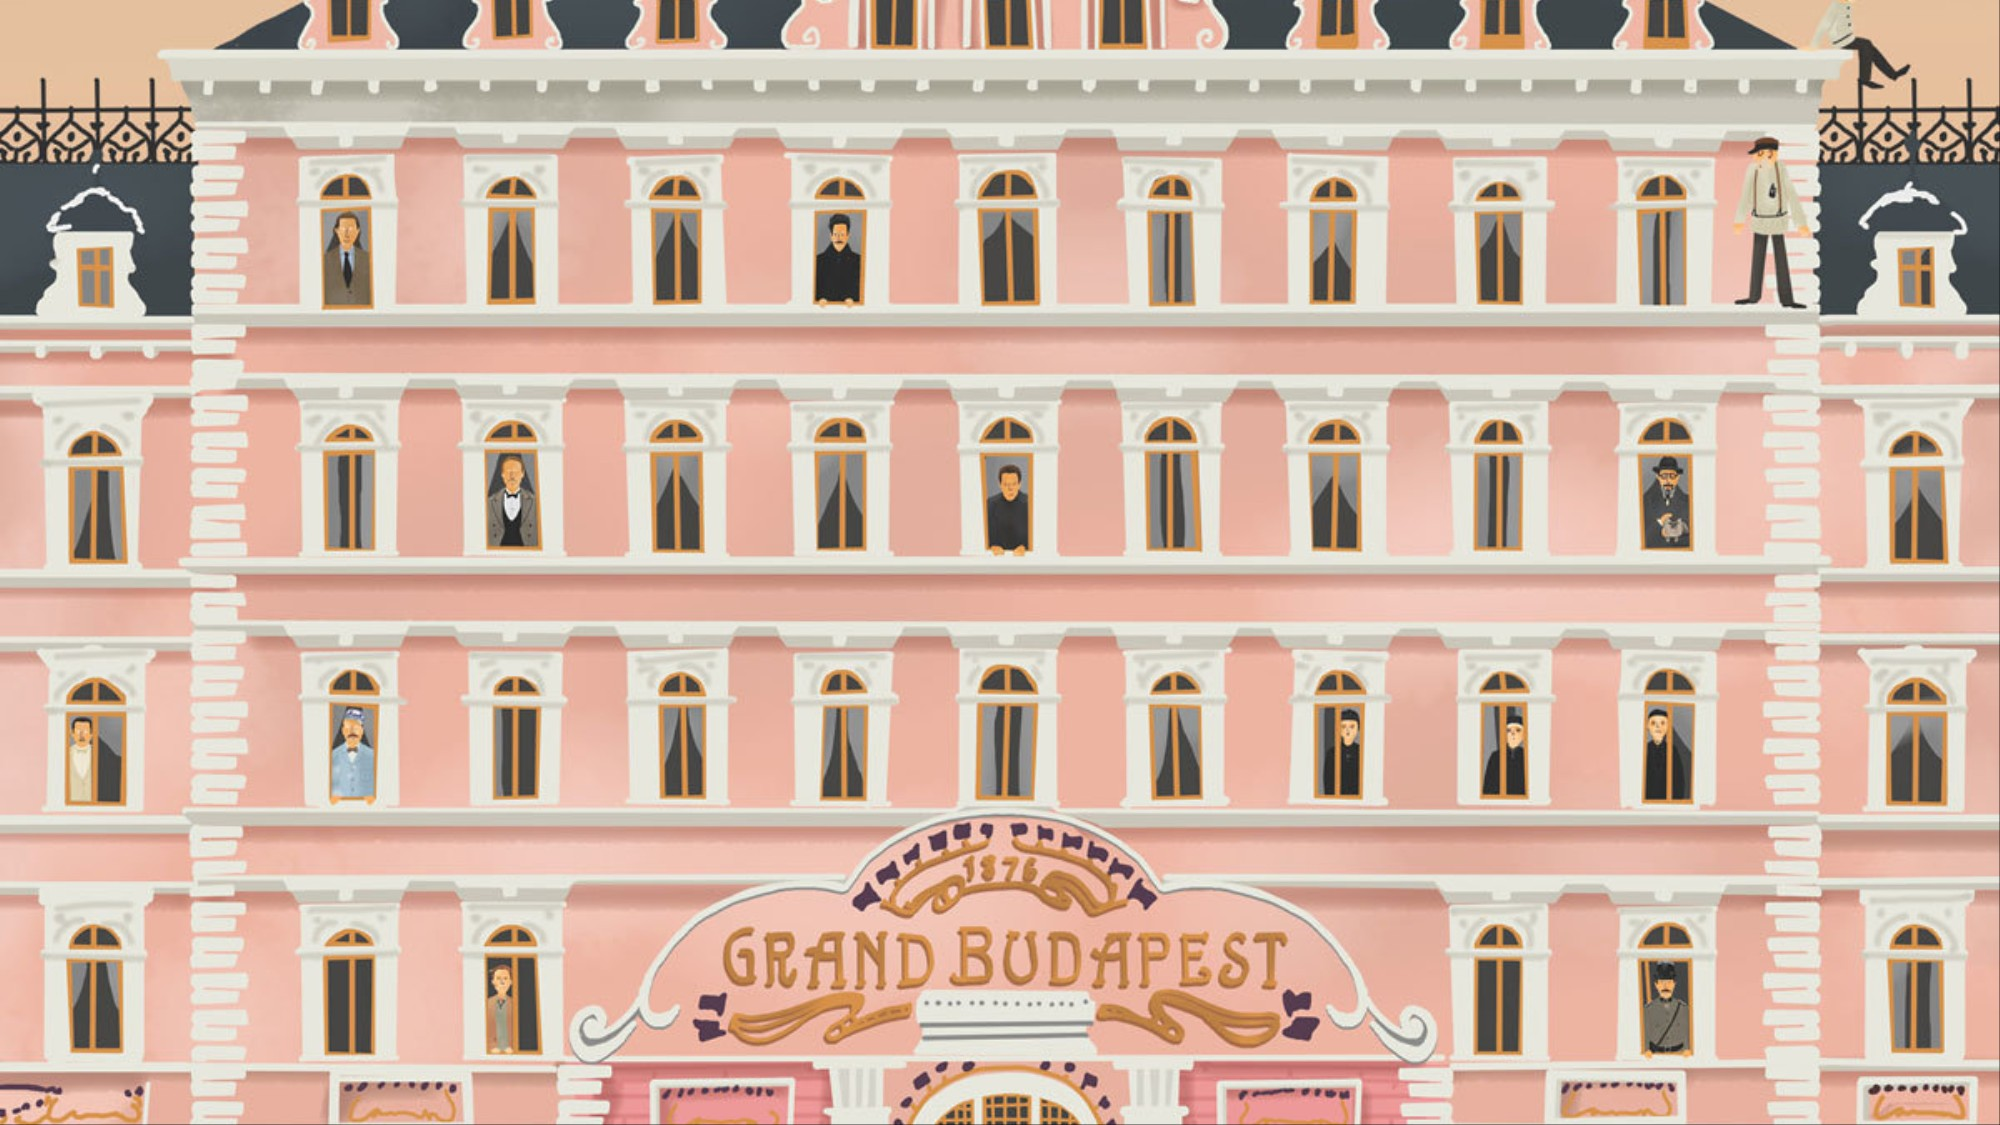 behind the scenes of the grand budapest hotel - i-D